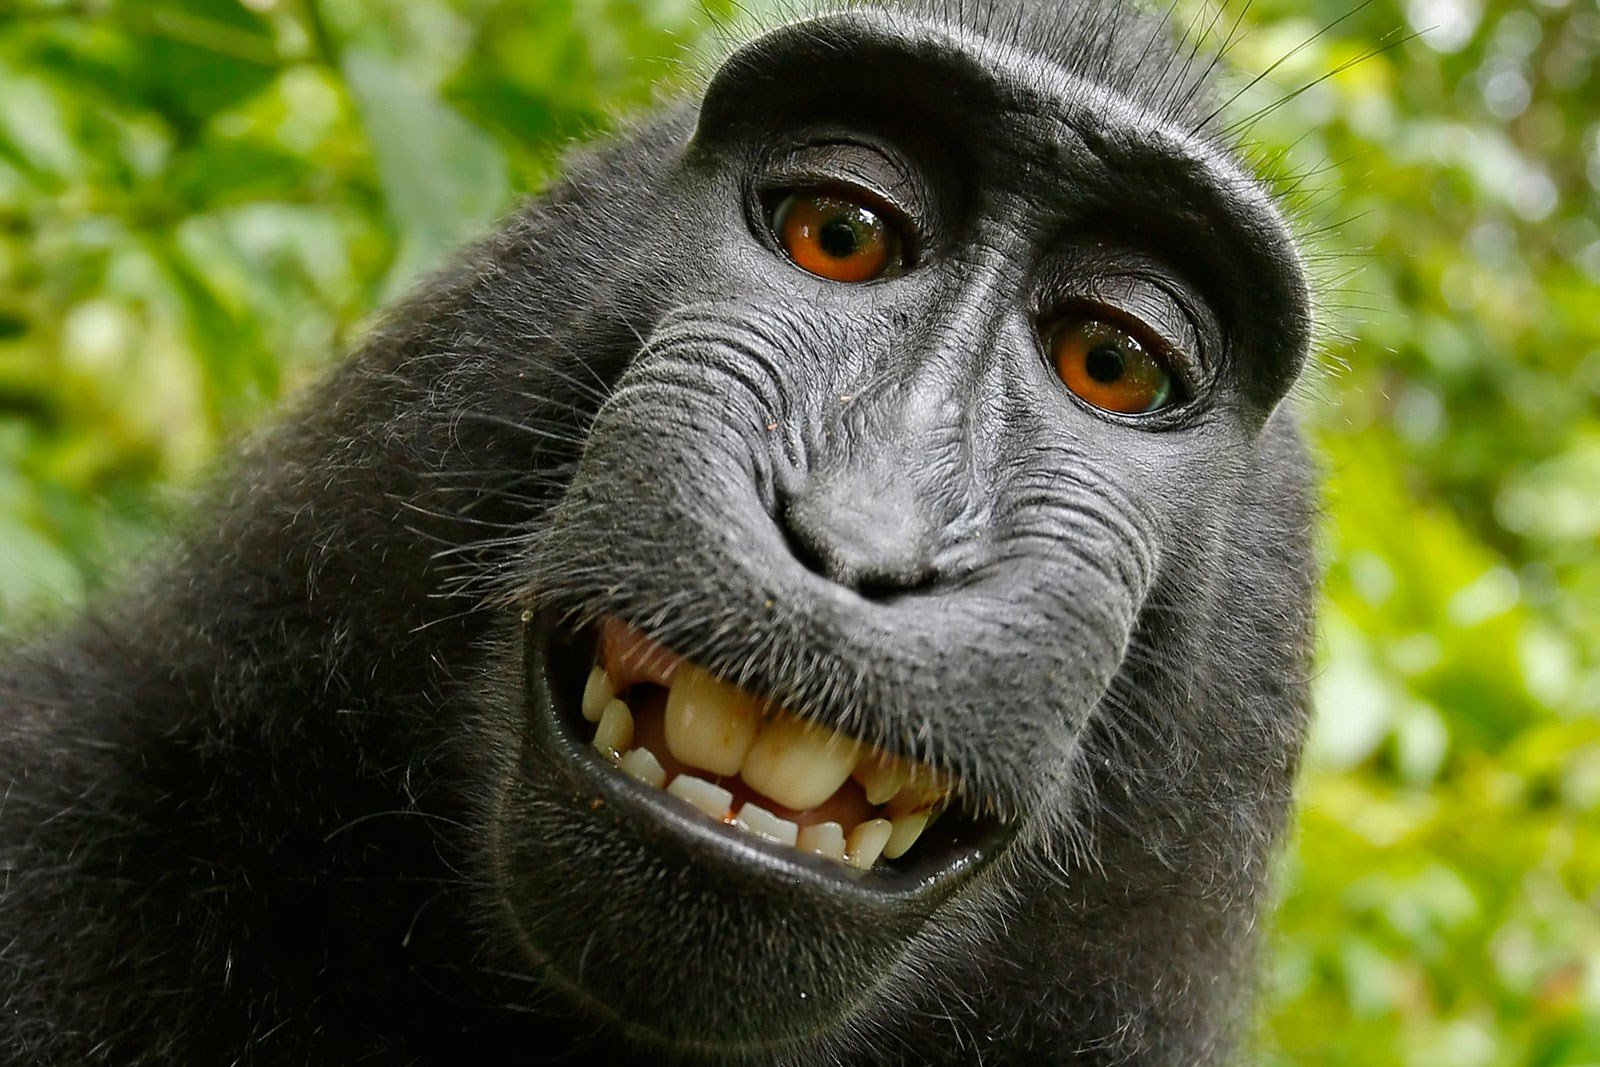 Fight over rights to monkey's selfie ends in settlement